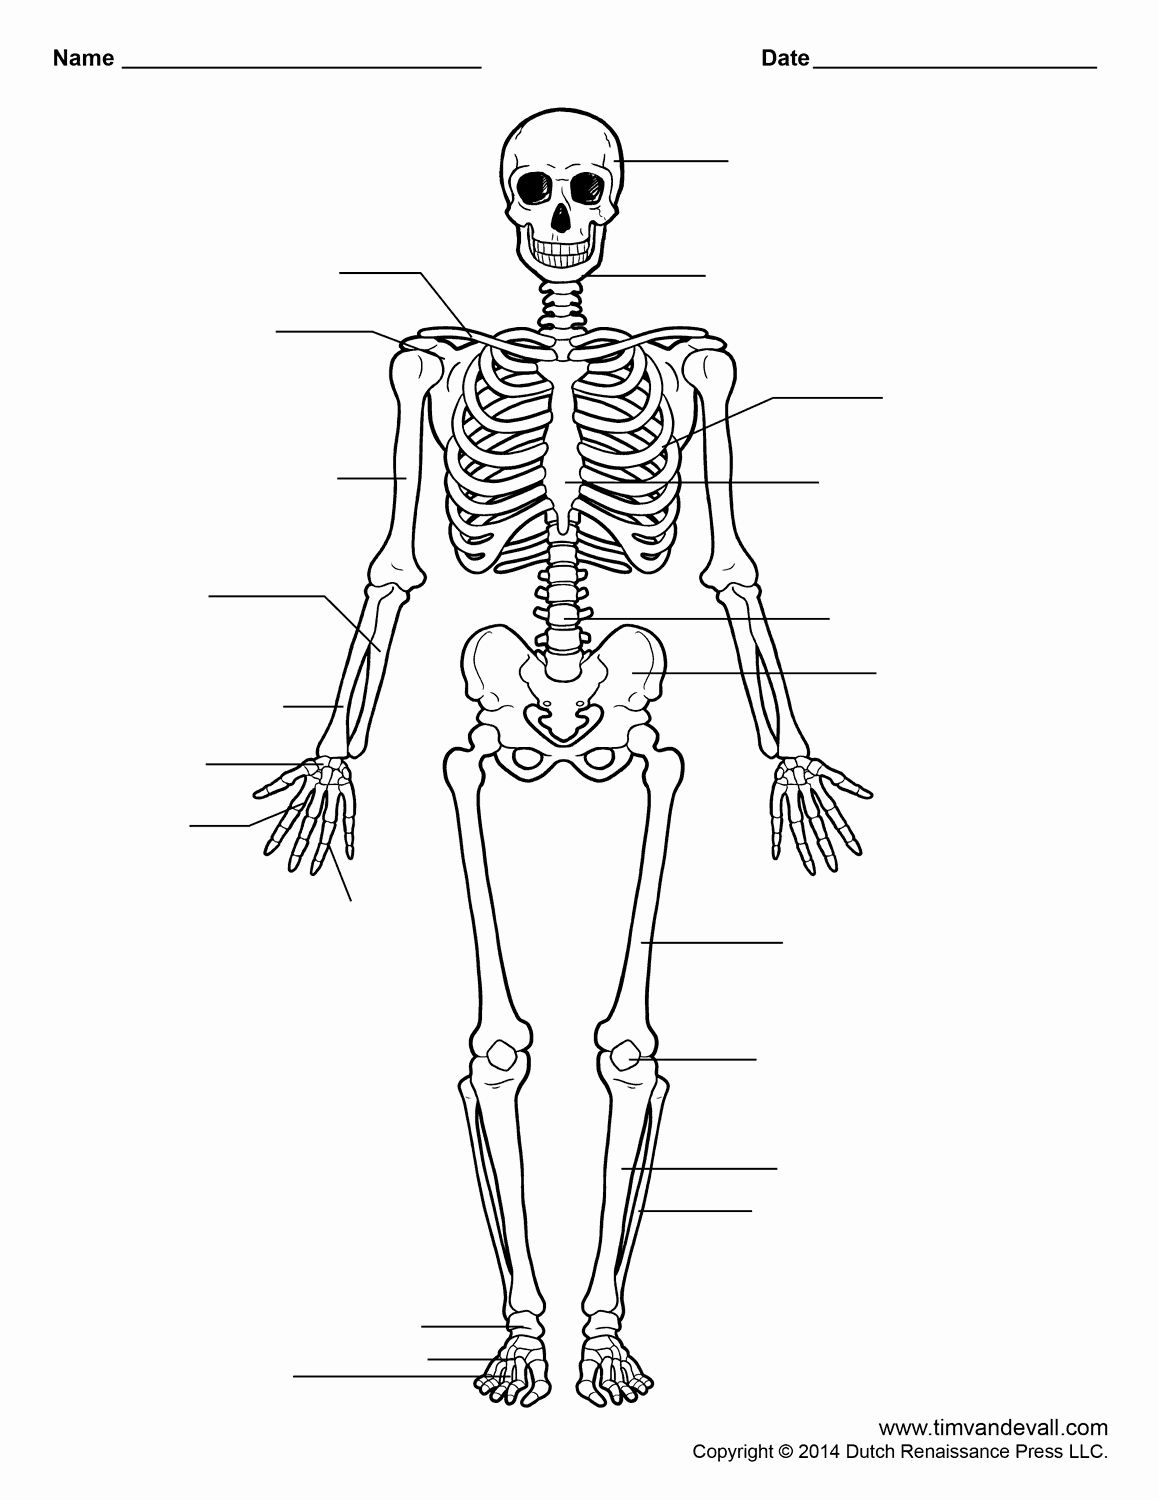 50 Appendicular Skeleton Worksheet Answers In 2020